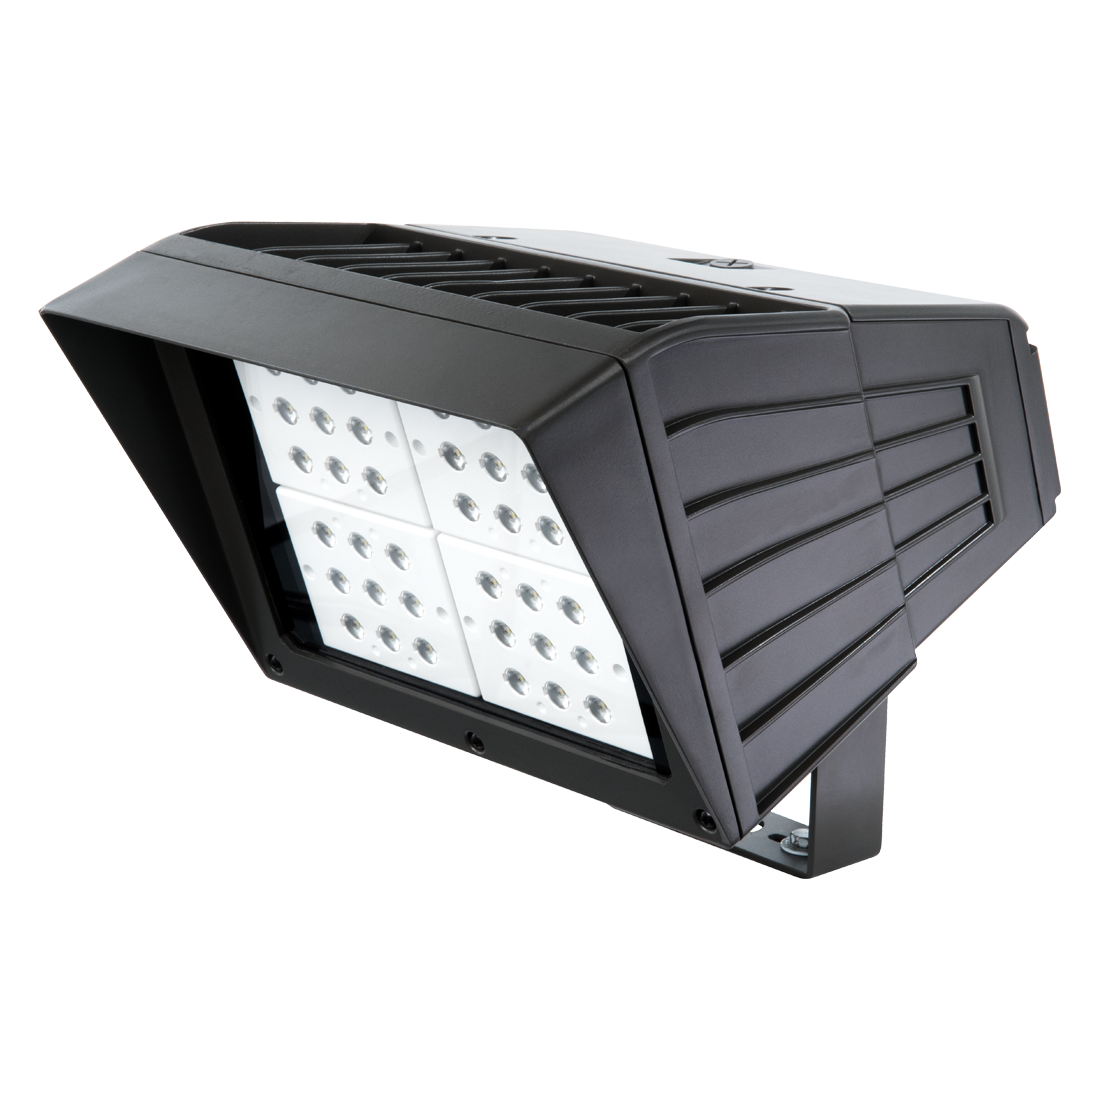 Atlas® PFL2G162LED Alpha Pro 2nd Generation Floodlight Fixture,) LED Lamp, 120 to 277 VAC, Bronze Housing